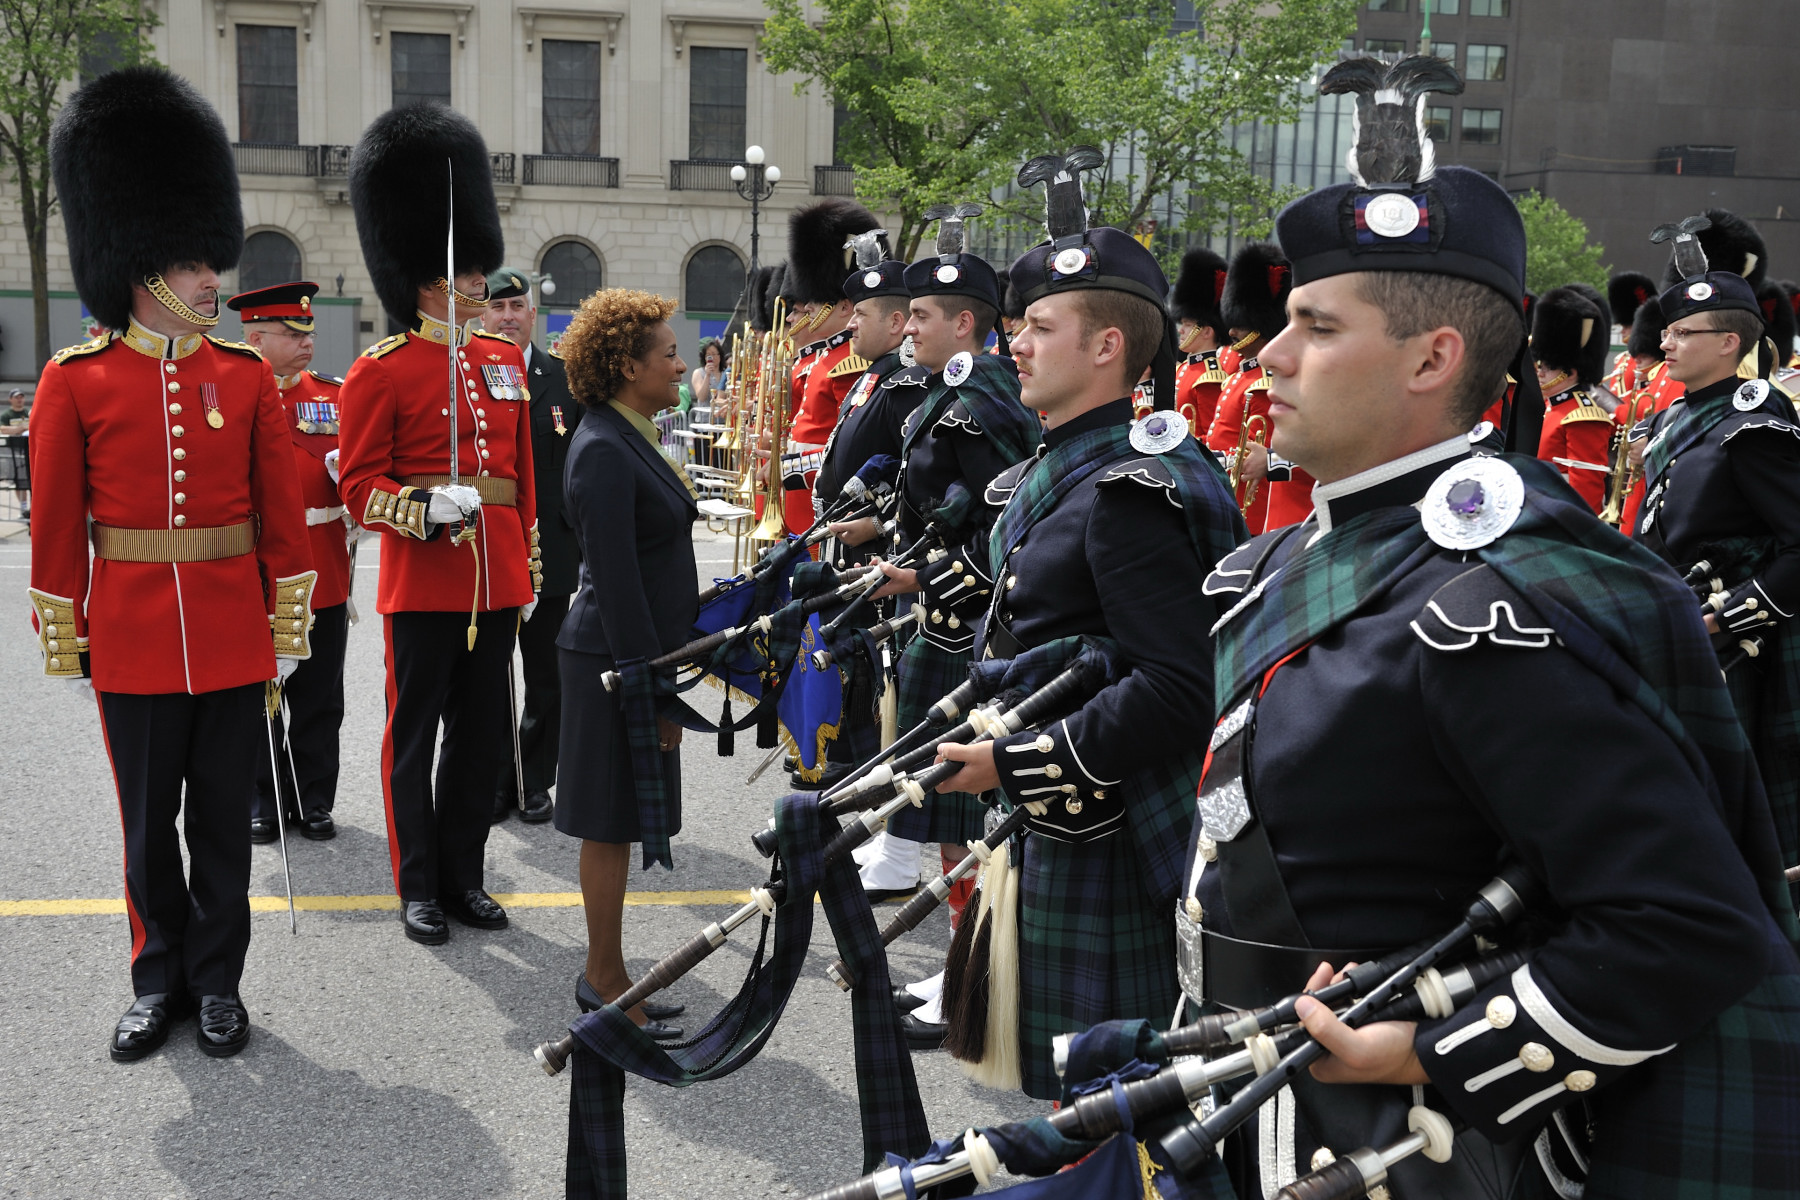 The public duties of the Ceremonial Guard, including the Relief of the Sentries, begins on June 28, on Parliament Hill and at Rideau Hall, the official residence of the governor general.